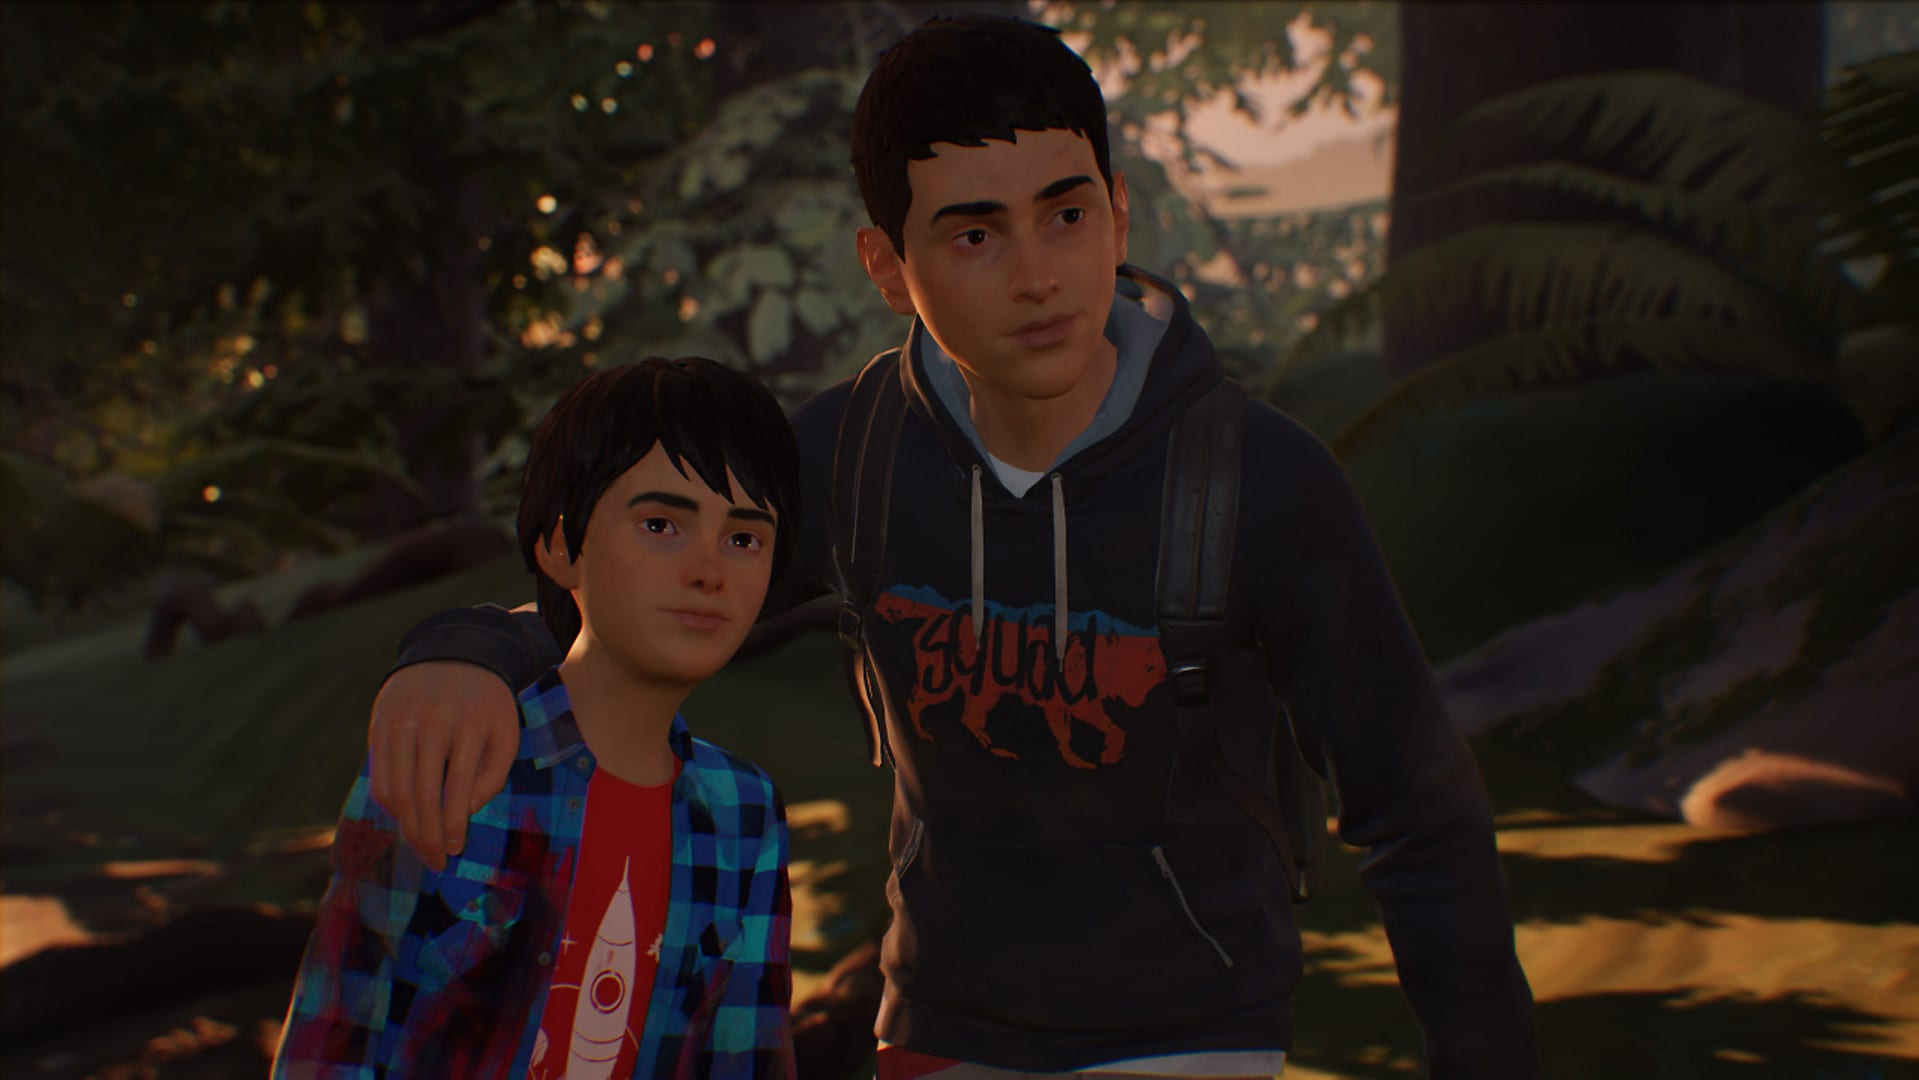 life is strange 2 all optional collectibles locations, trophies, achievements